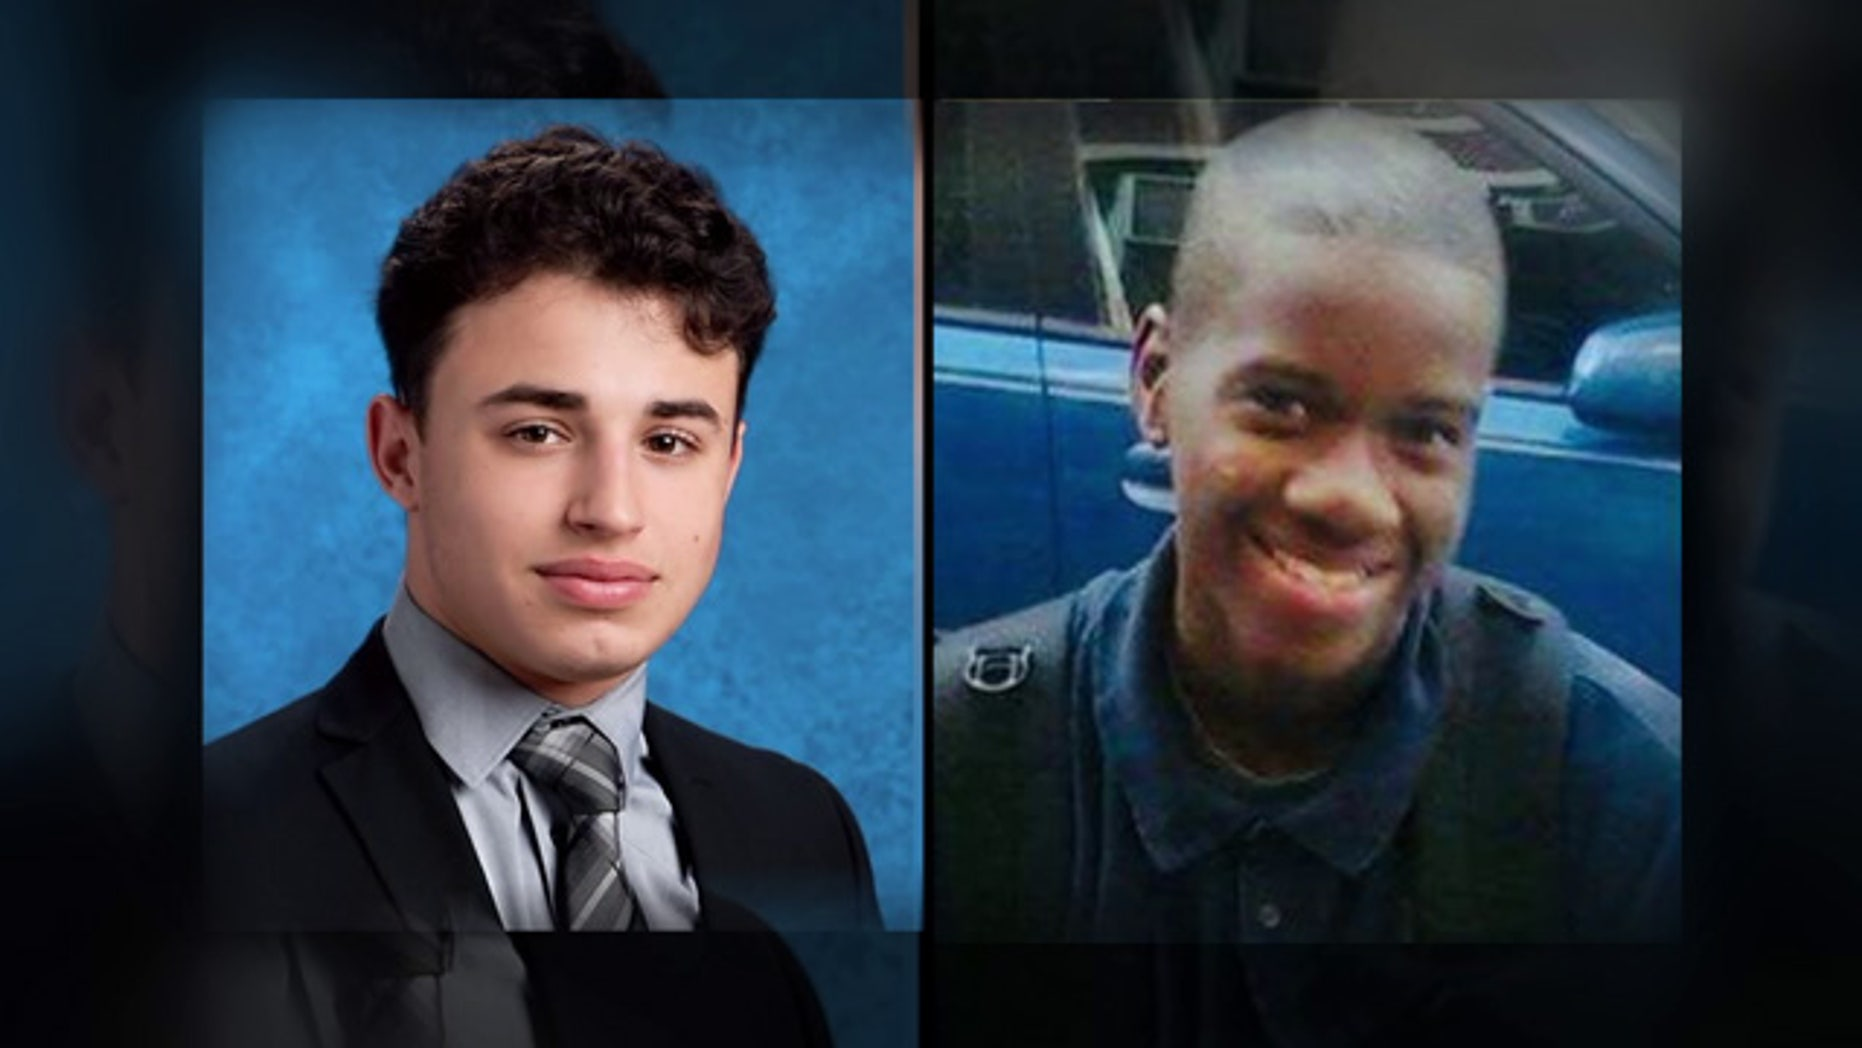 Philadelphia teens Salvatore DiNubile and Caleer Miller were shot dead Tuesday following an argument between two groups of teens.